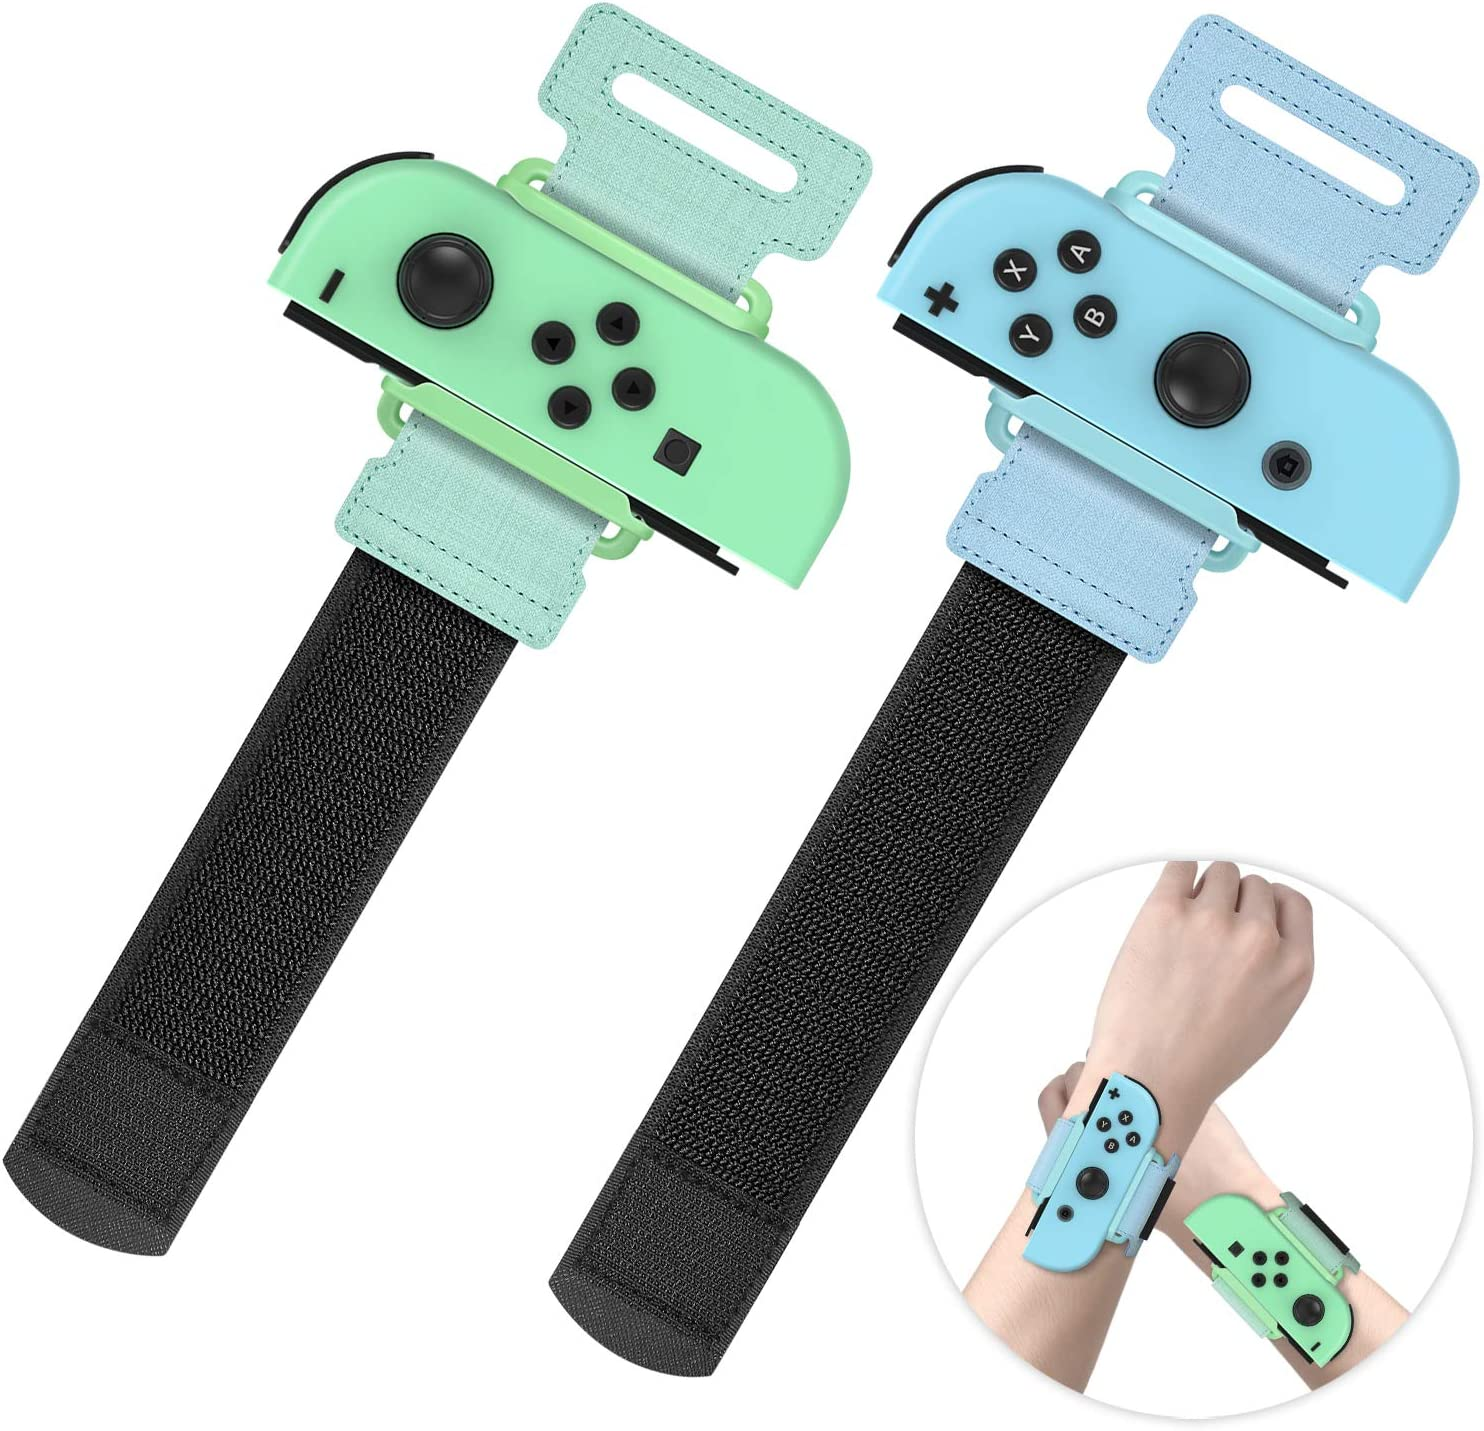 Upgraded Wrist Bands for Just Dance 2020 Nintendo Switch, YUANHOT Adjustable Elastic Dance Straps for Switch Joy-Con Controllers, 2 Pack for Kids and Adults - Green/Blue